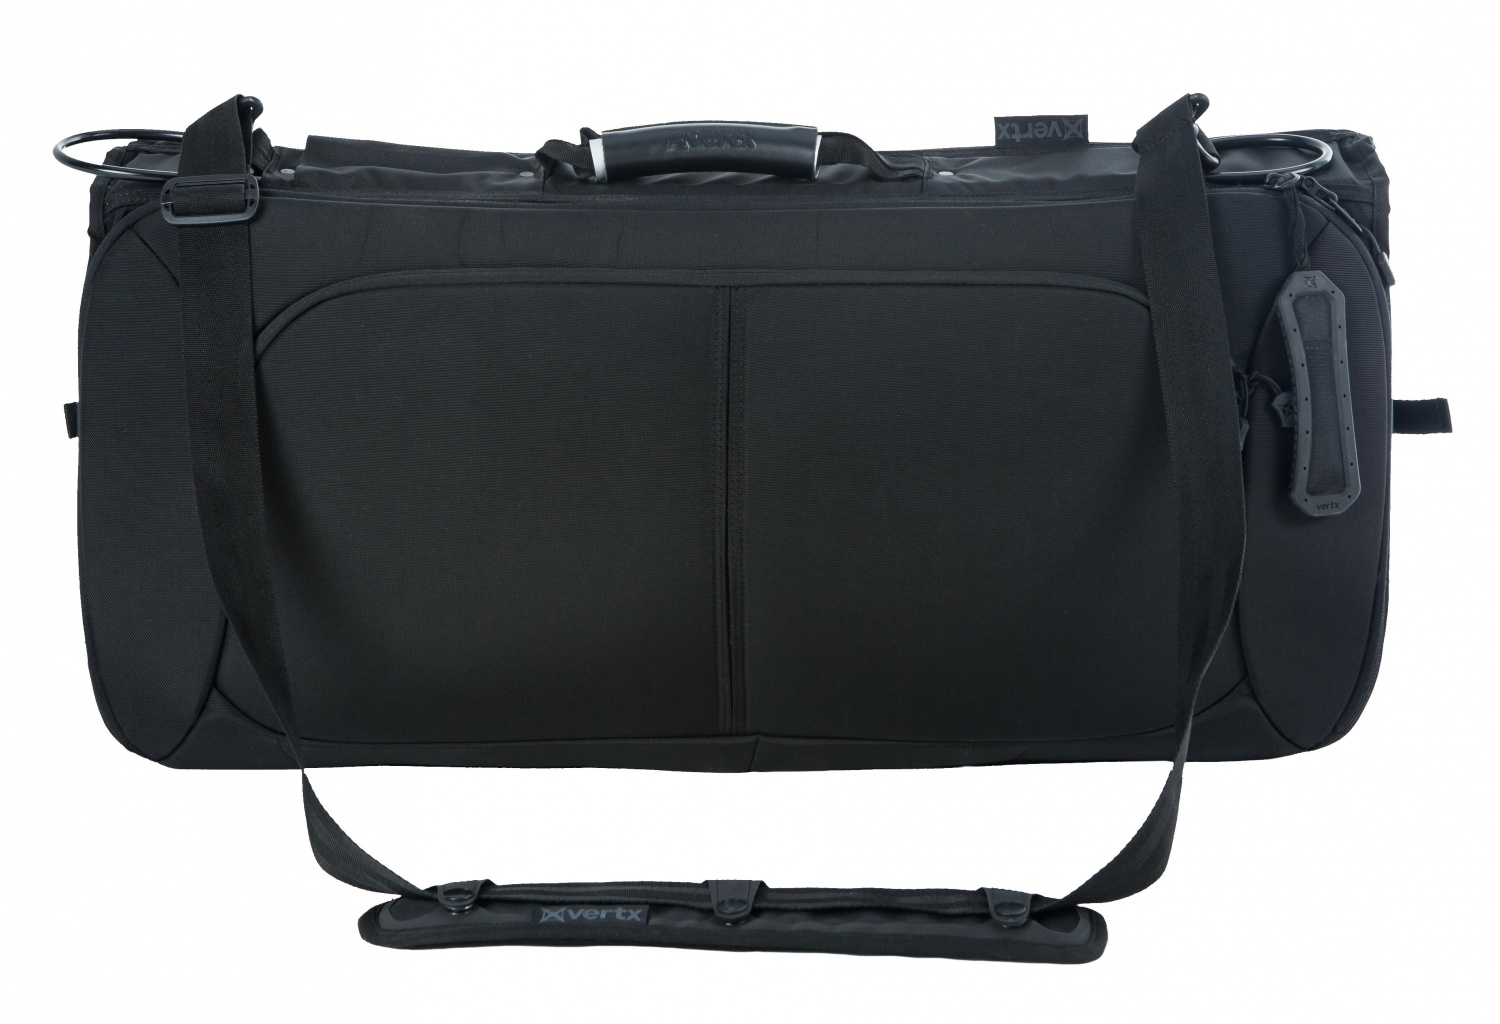 Vertx - 2016 - Garment Bag